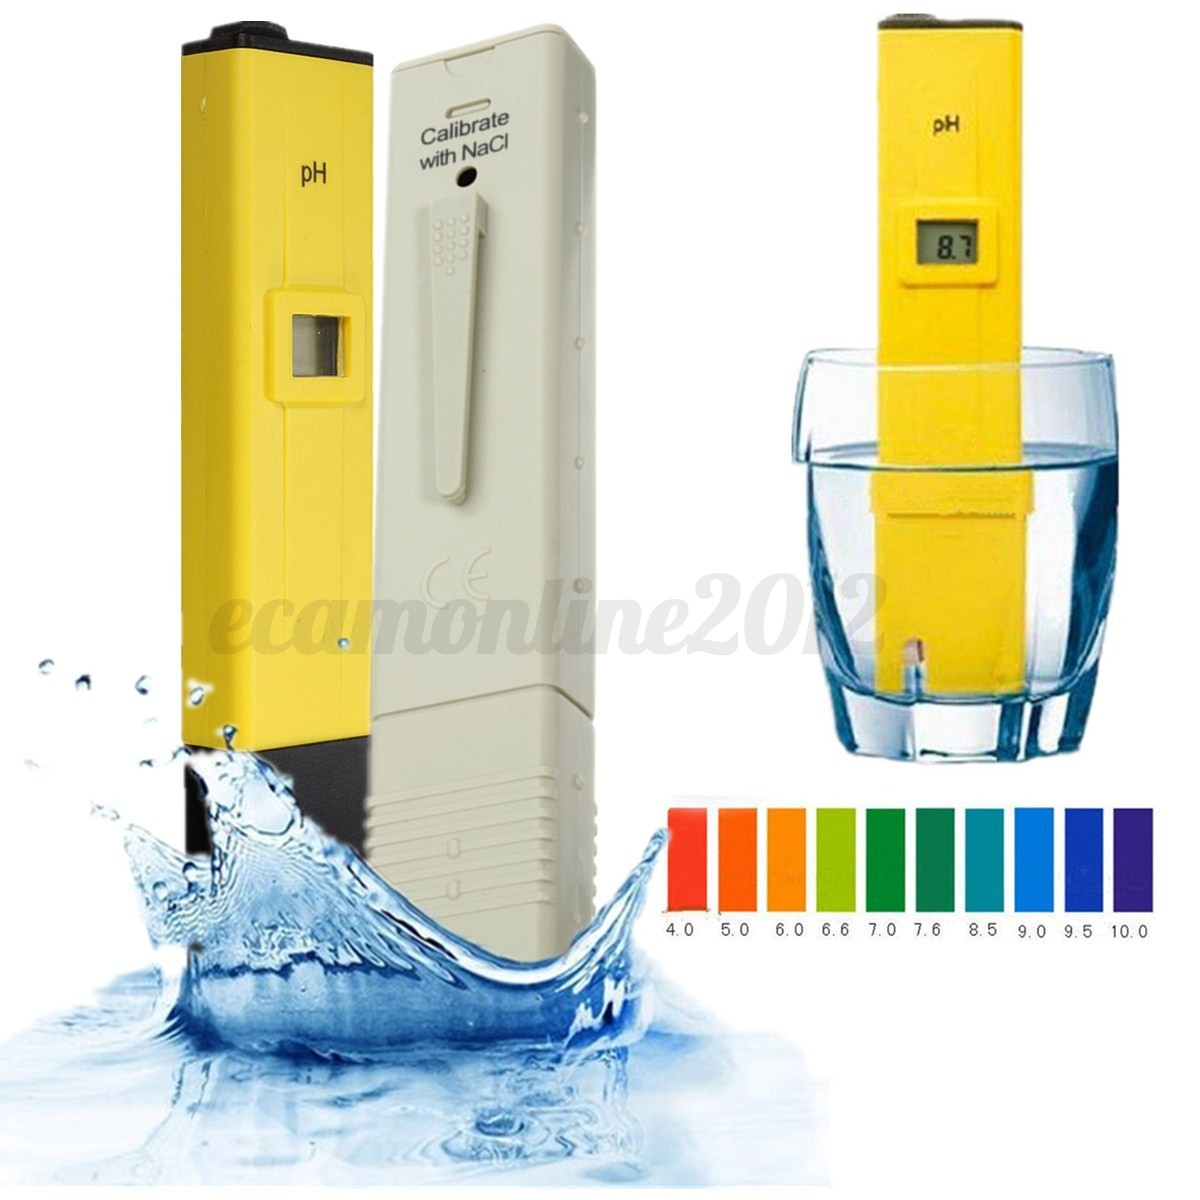 lcd ph meter digital tds tester aquarium pool hydroponic water test monitor pen ebay. Black Bedroom Furniture Sets. Home Design Ideas